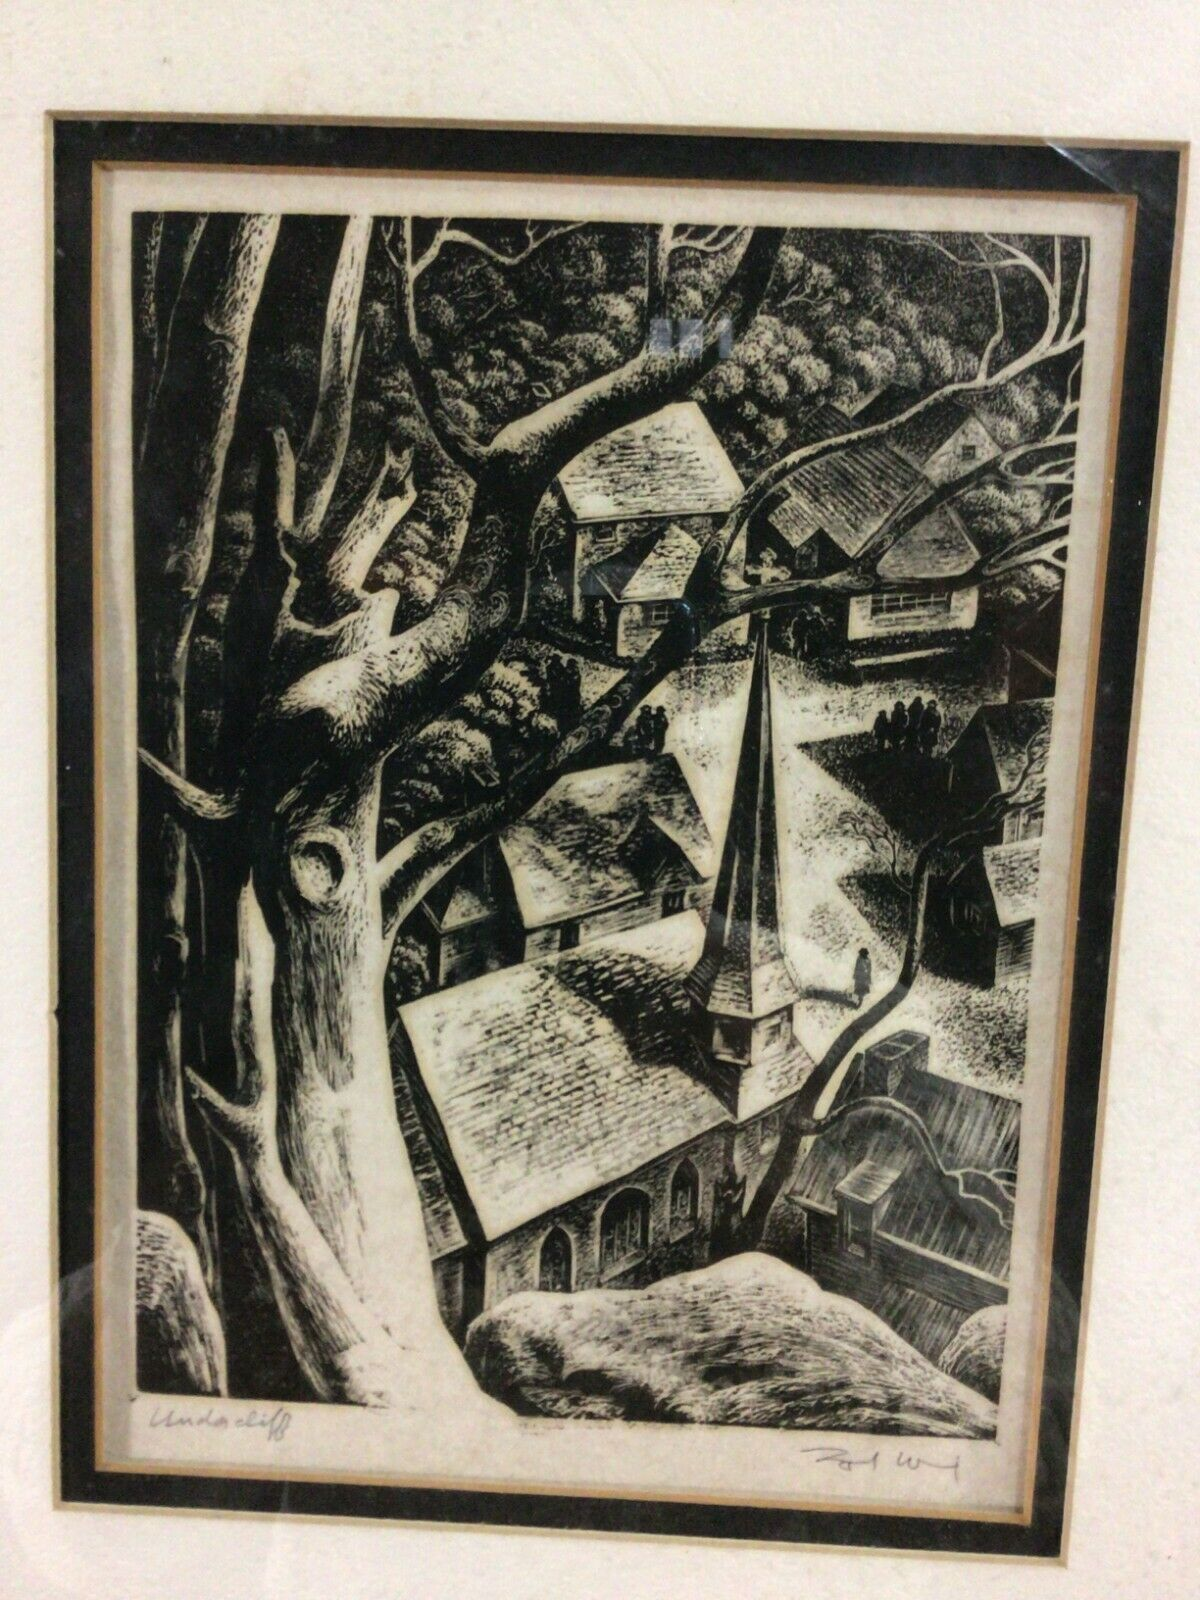 1948 Lynd Ward wood engraving UNDERCLIFF good condition on eBay thumbnail